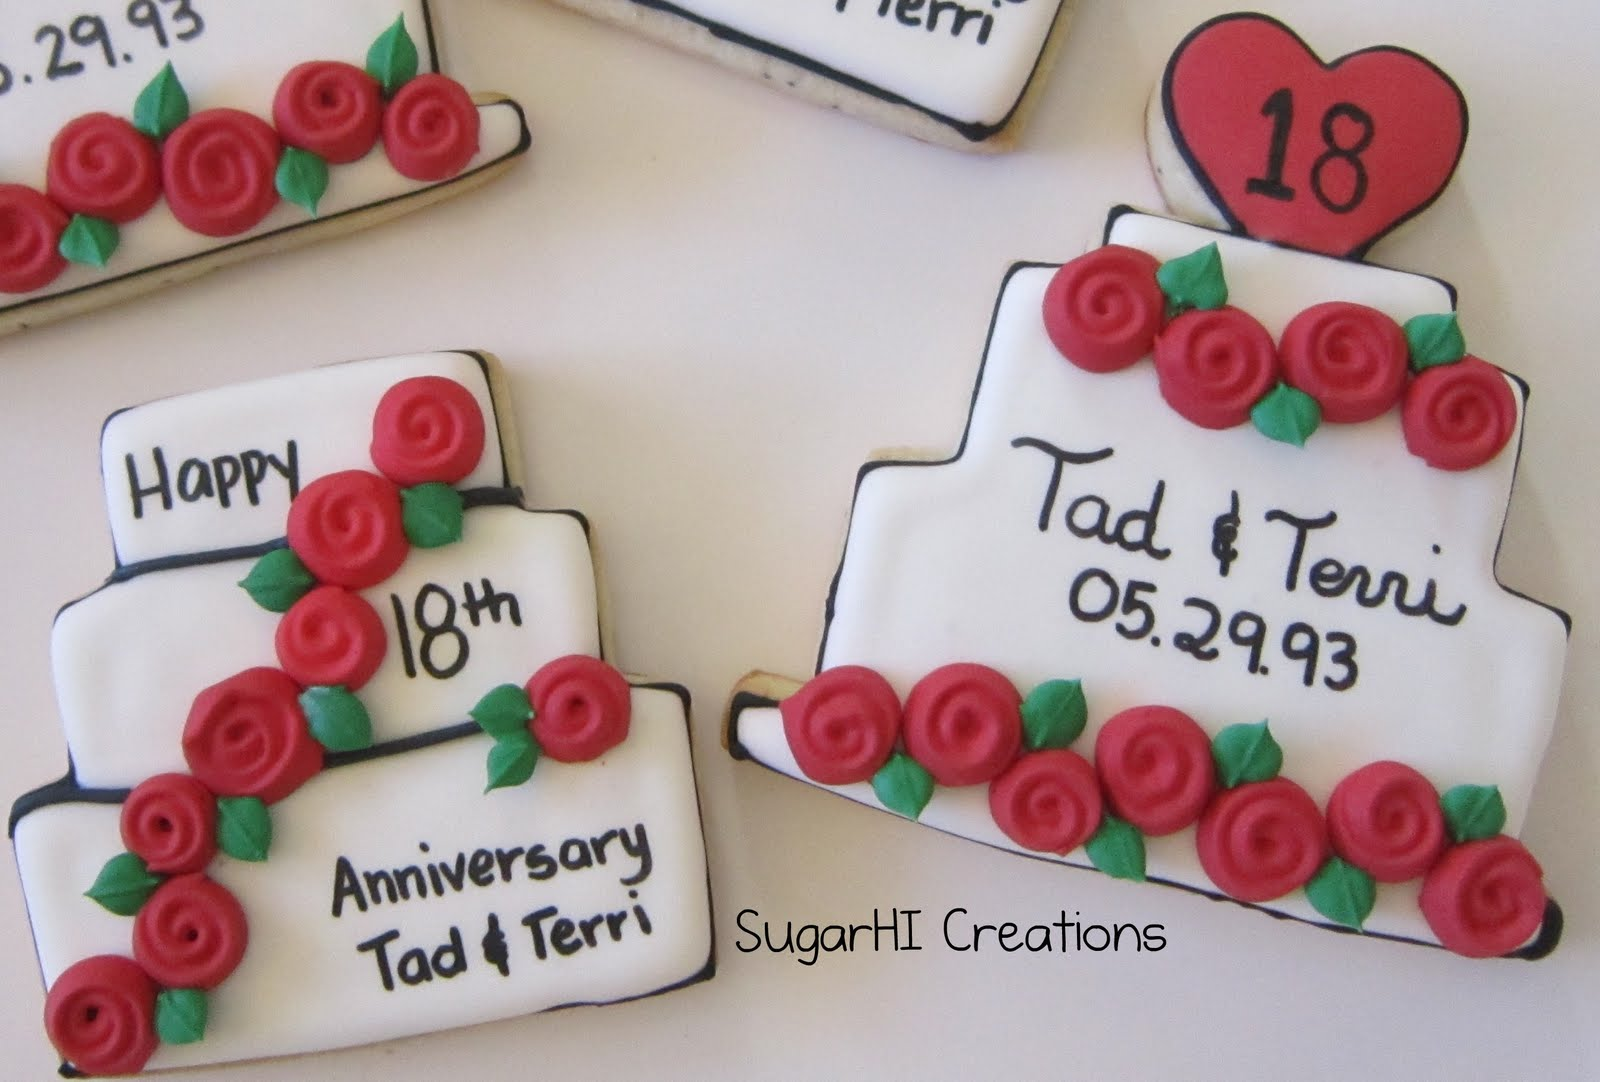 SugarHI Creations: Happy Anniversaries